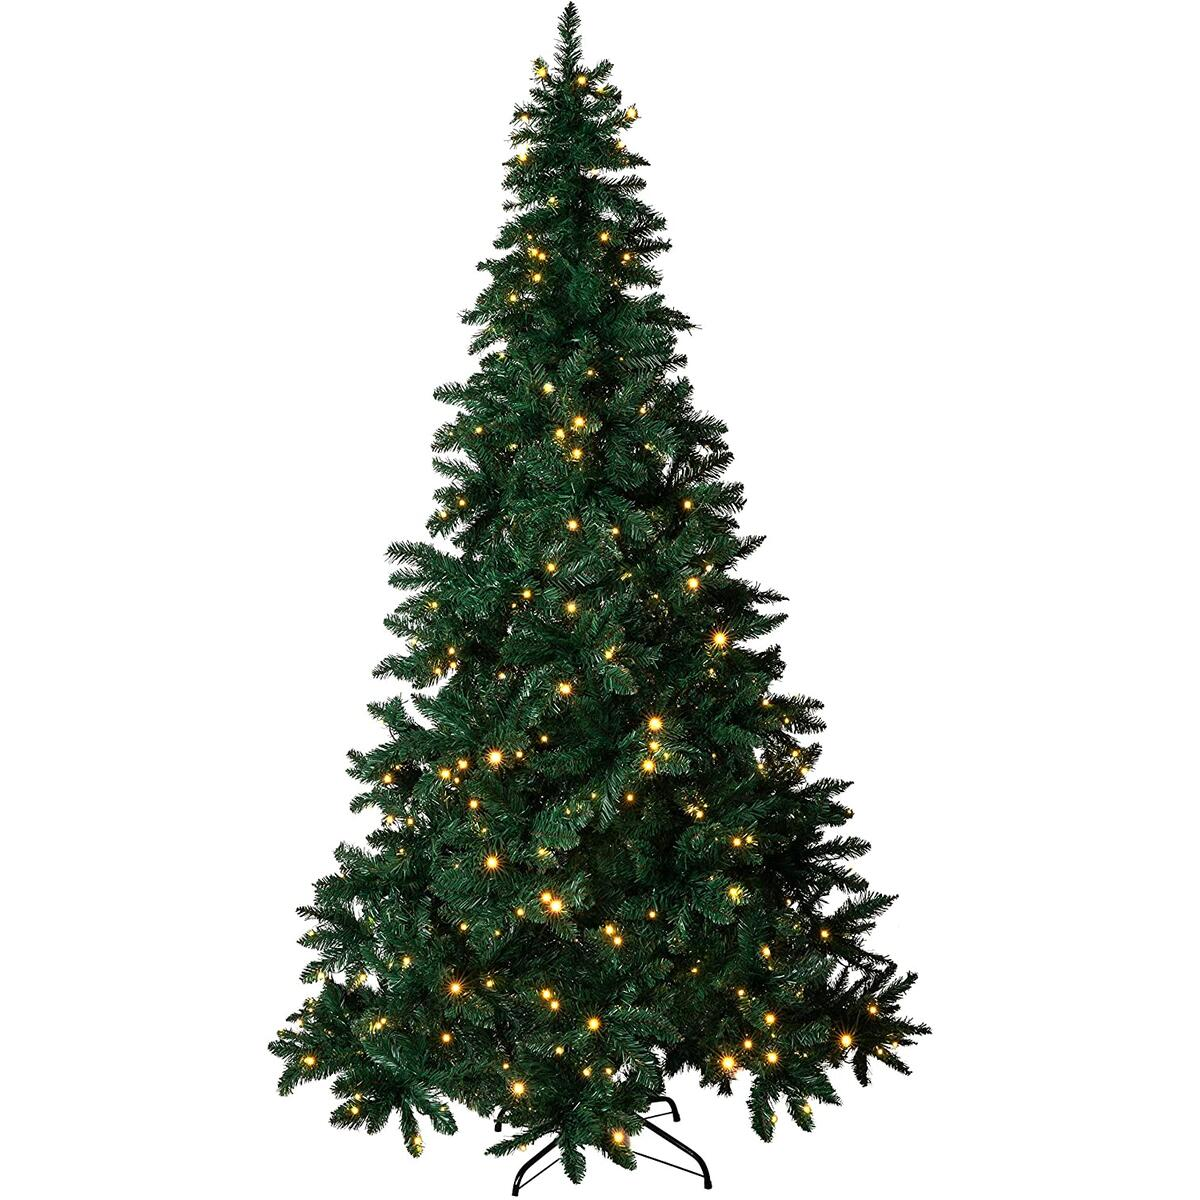 Amazing Seasons 7.5 ft Pre-Lit Christmas Tree   Pre-Strung with 480 LED Multi-Color and Warm White Christmas Lights   6 Functions with Foot Switch   Artificial Pine with Hinged Branches, Green